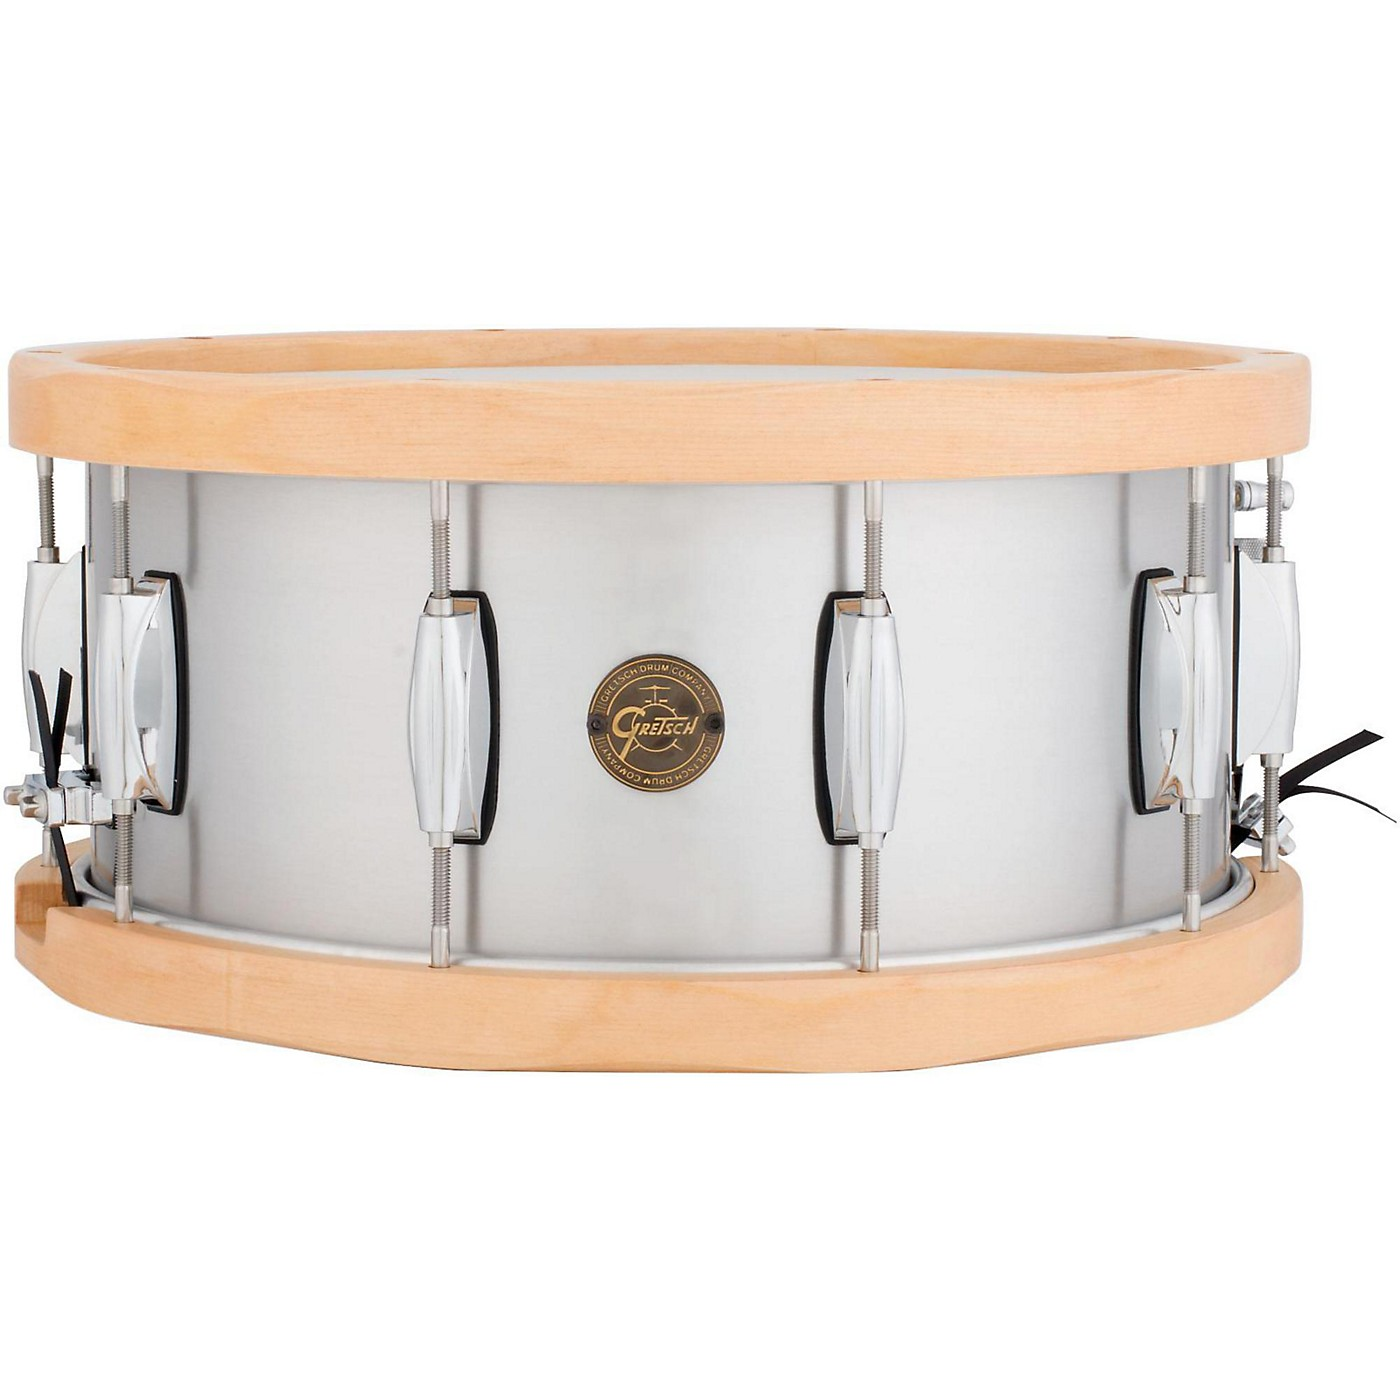 Gretsch Drums Gold Series Aluminum/Maple Snare Drum thumbnail